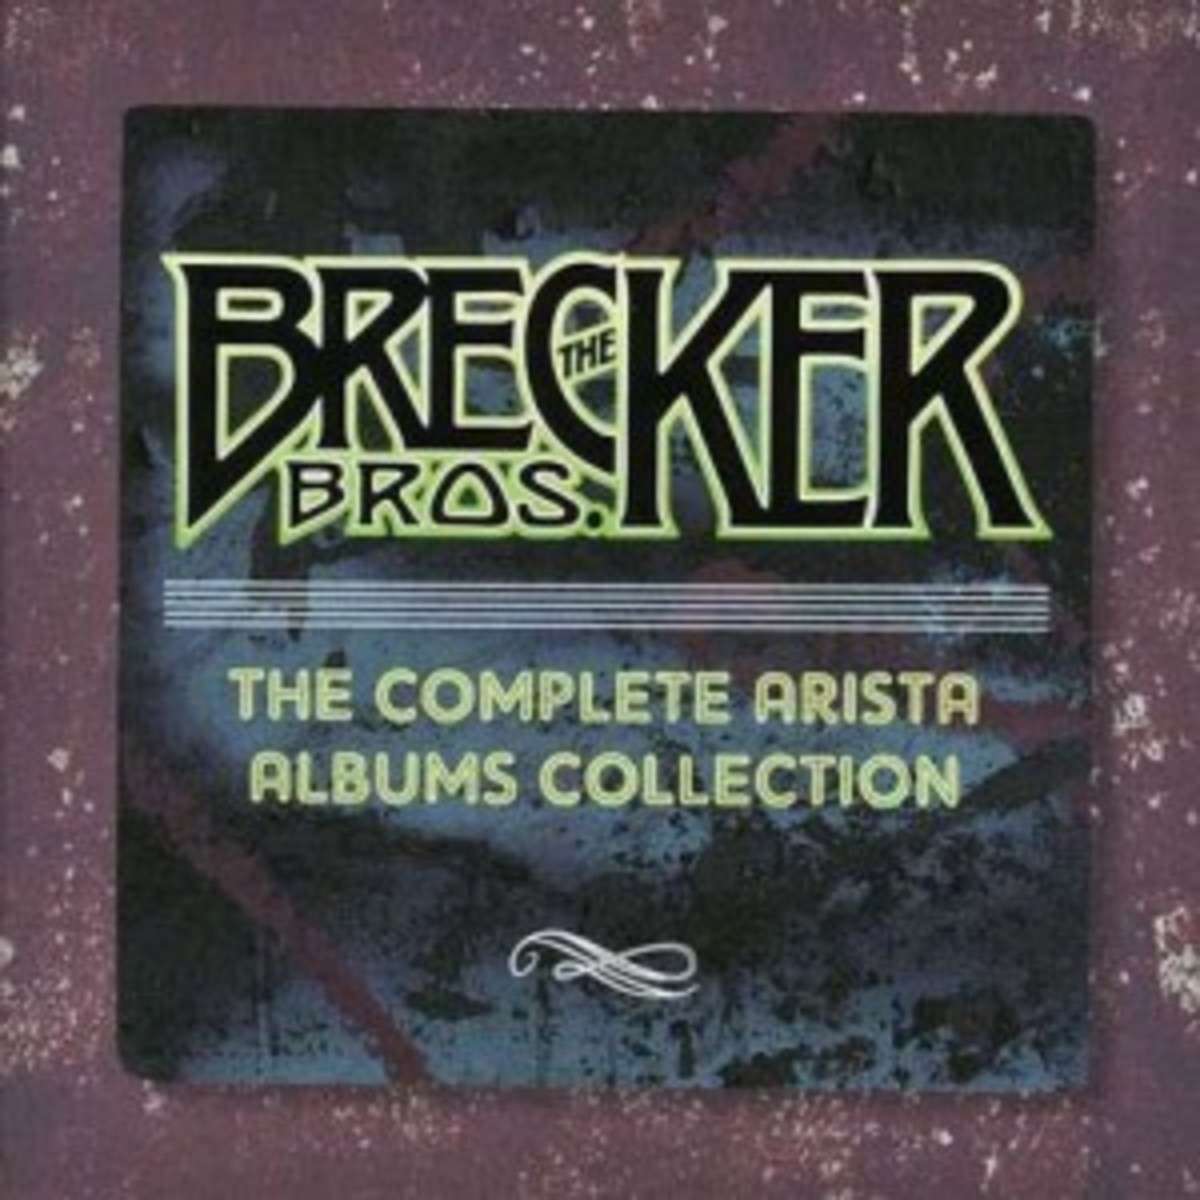 Brecker Brothers Complete Arista Albums Collection